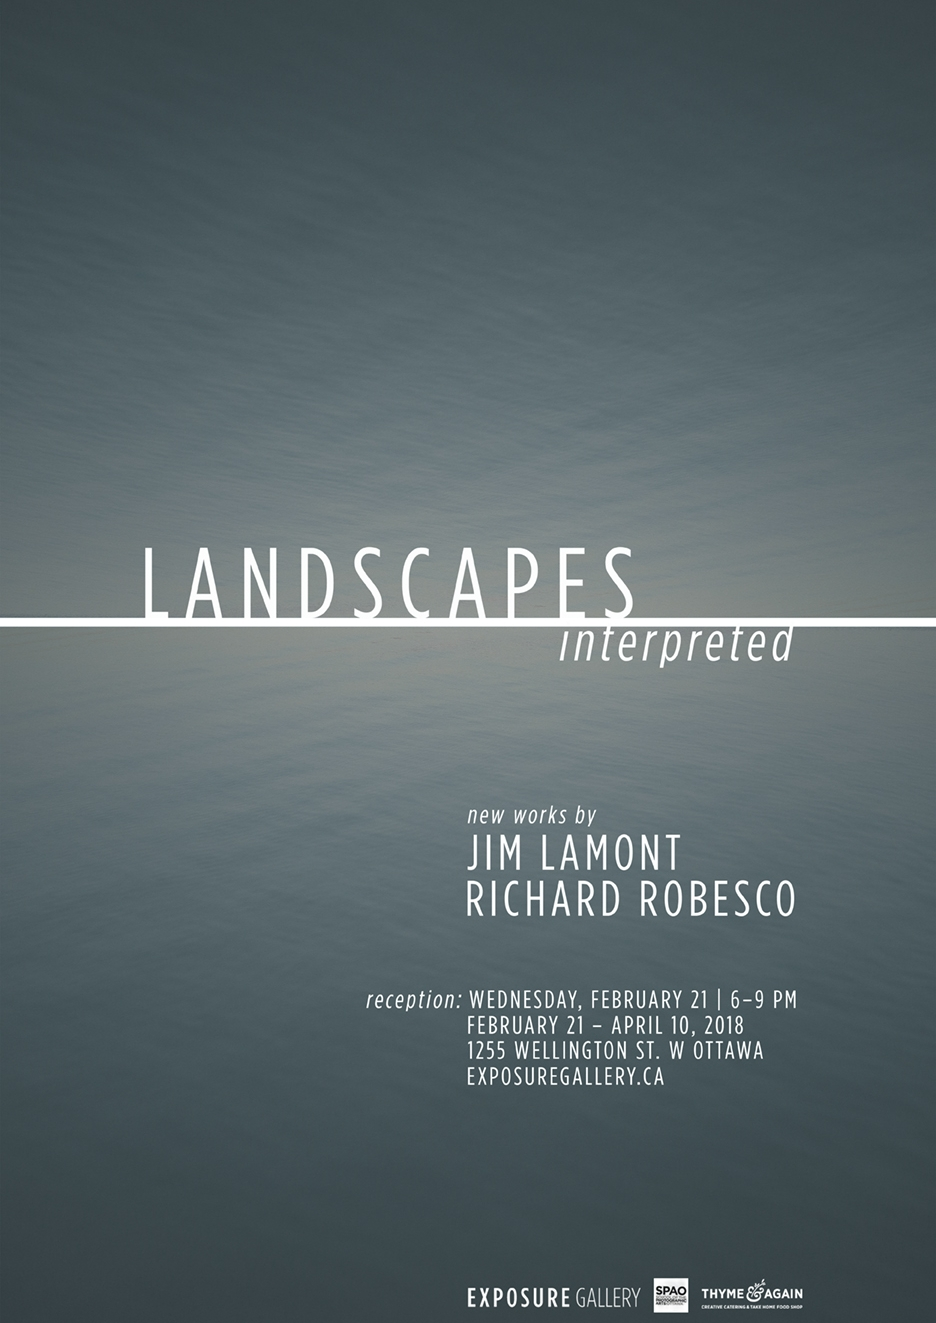 LANDSCAPES_interpreted_poster.jpg